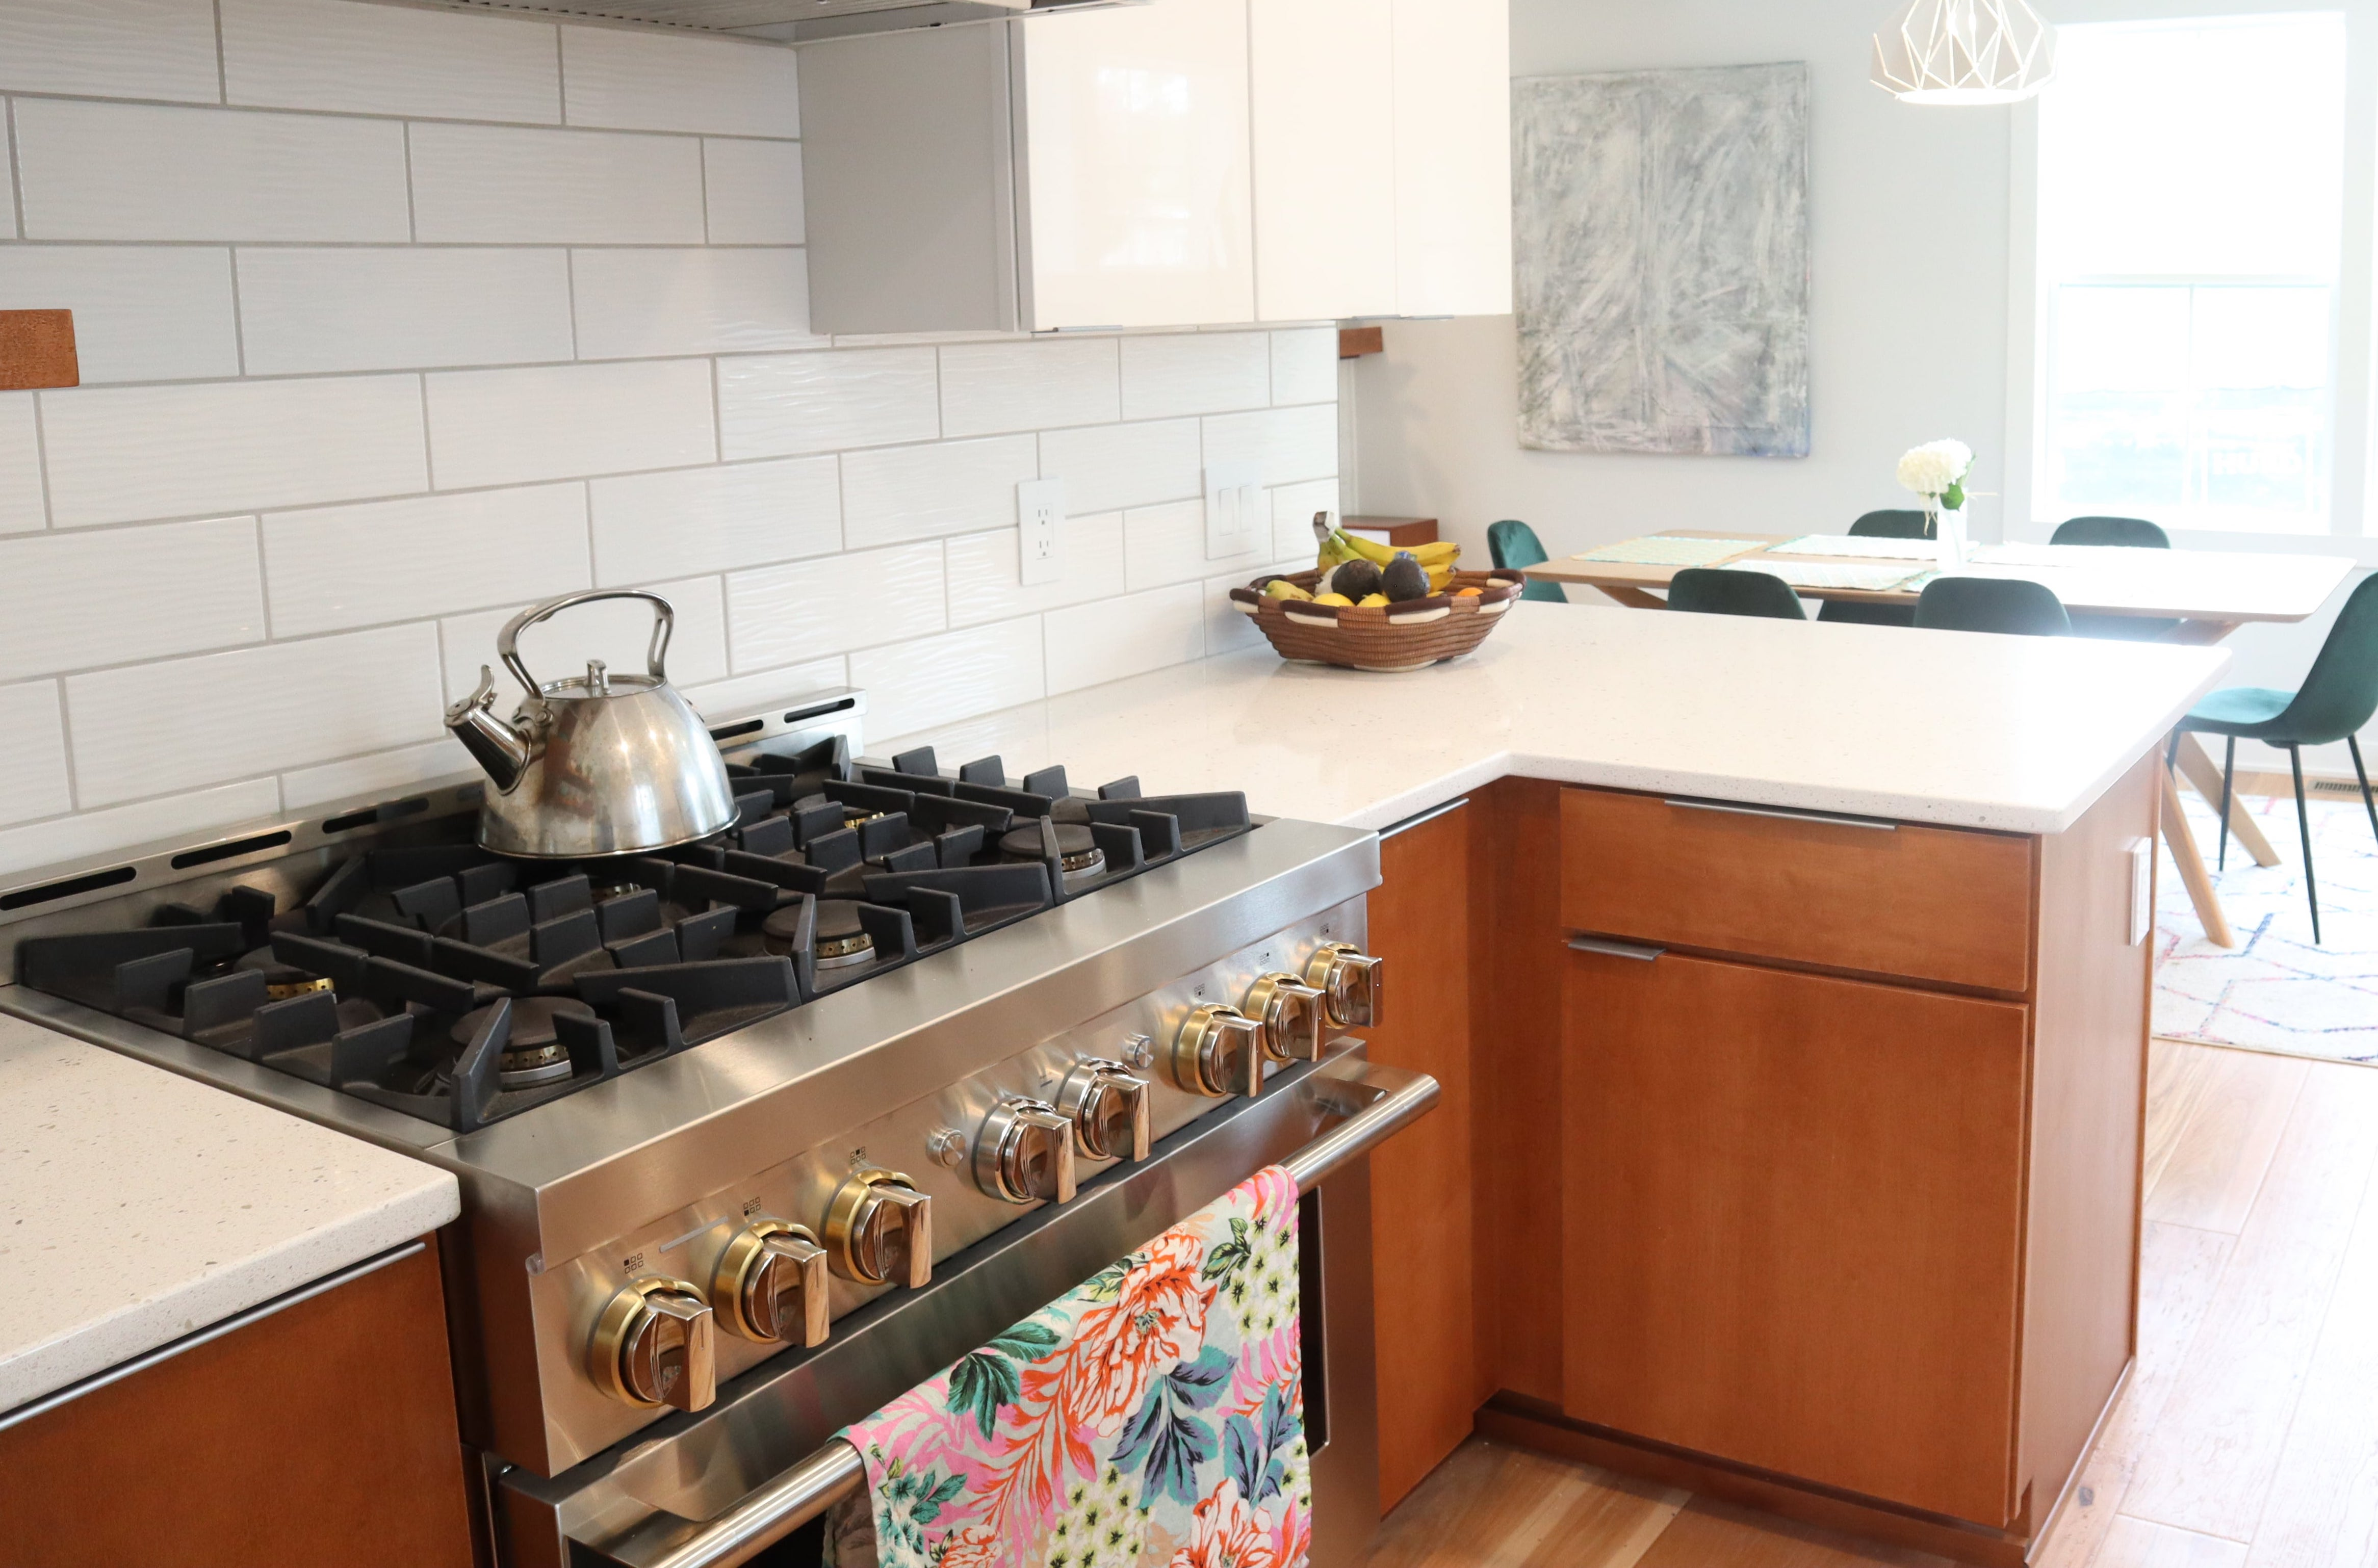 Having a Hard Time Choosing New Appliances? Here's What You Need to Know